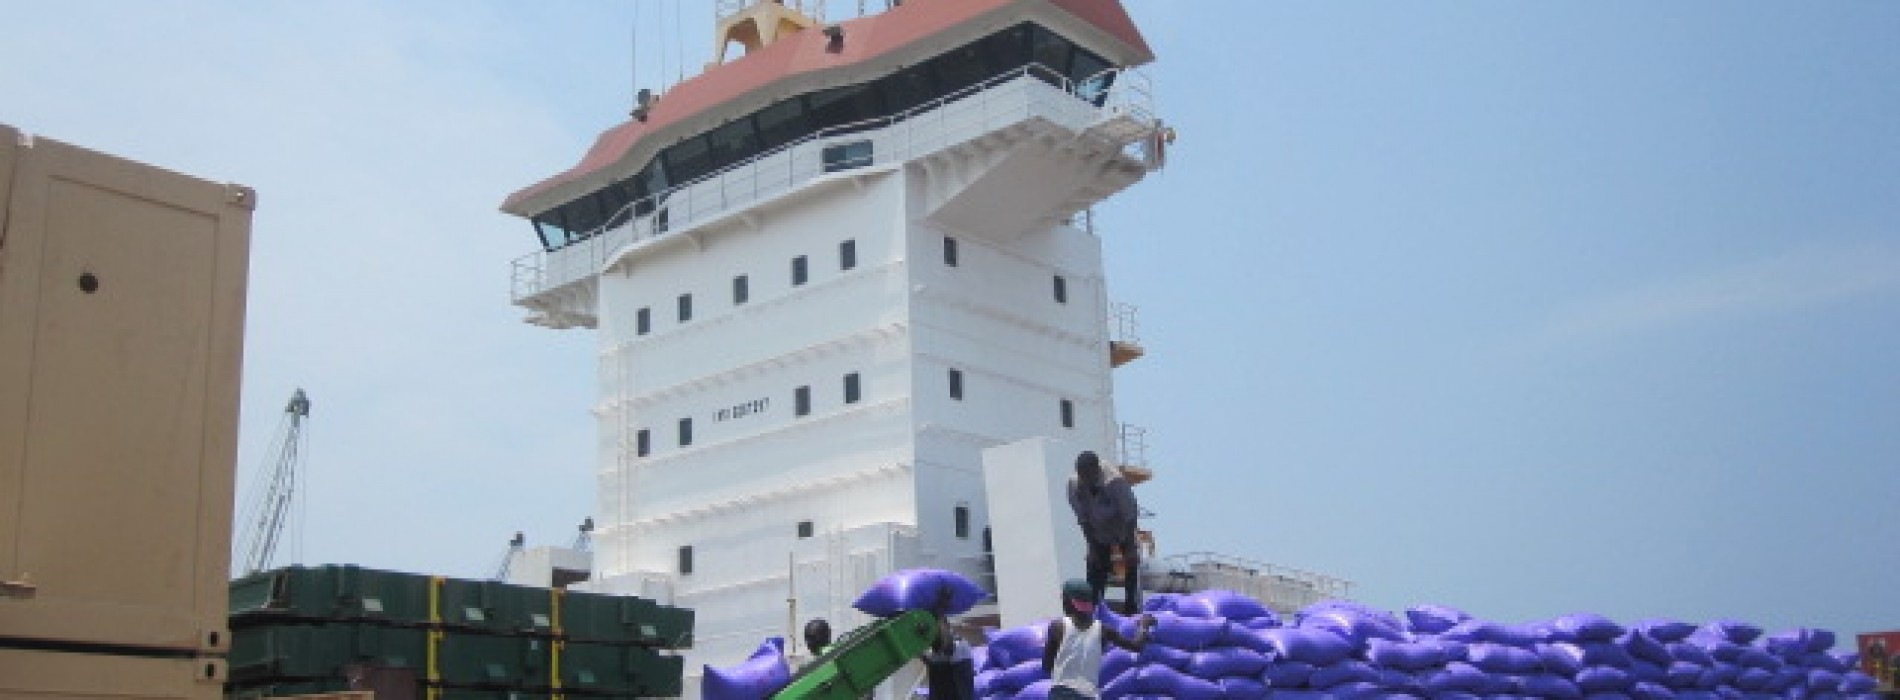 Togo: $ 350 million to become an emerging country